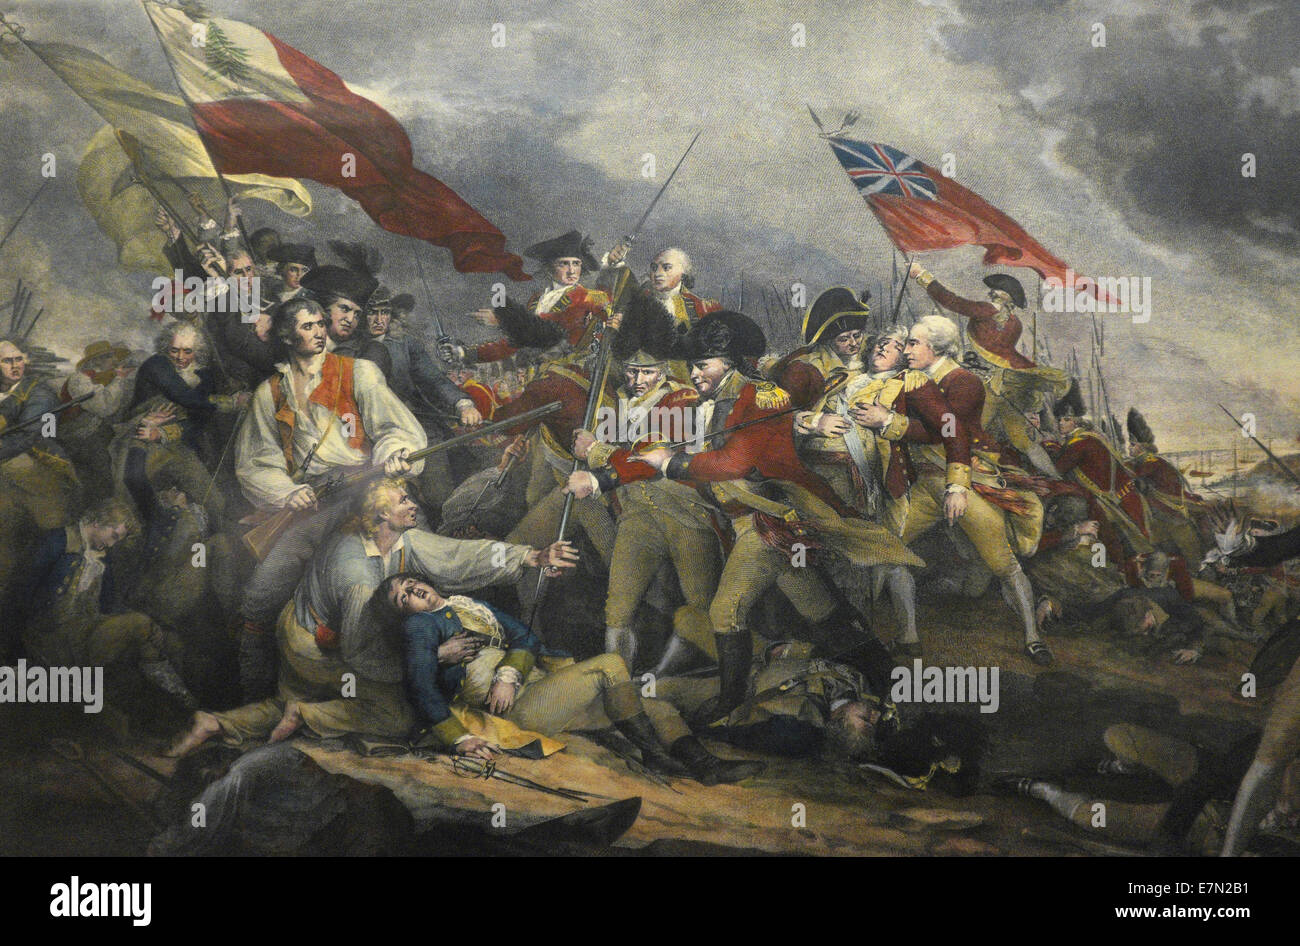 the battle at bunker hill The battle of bunker breeds hill the glorious cause for american independence.